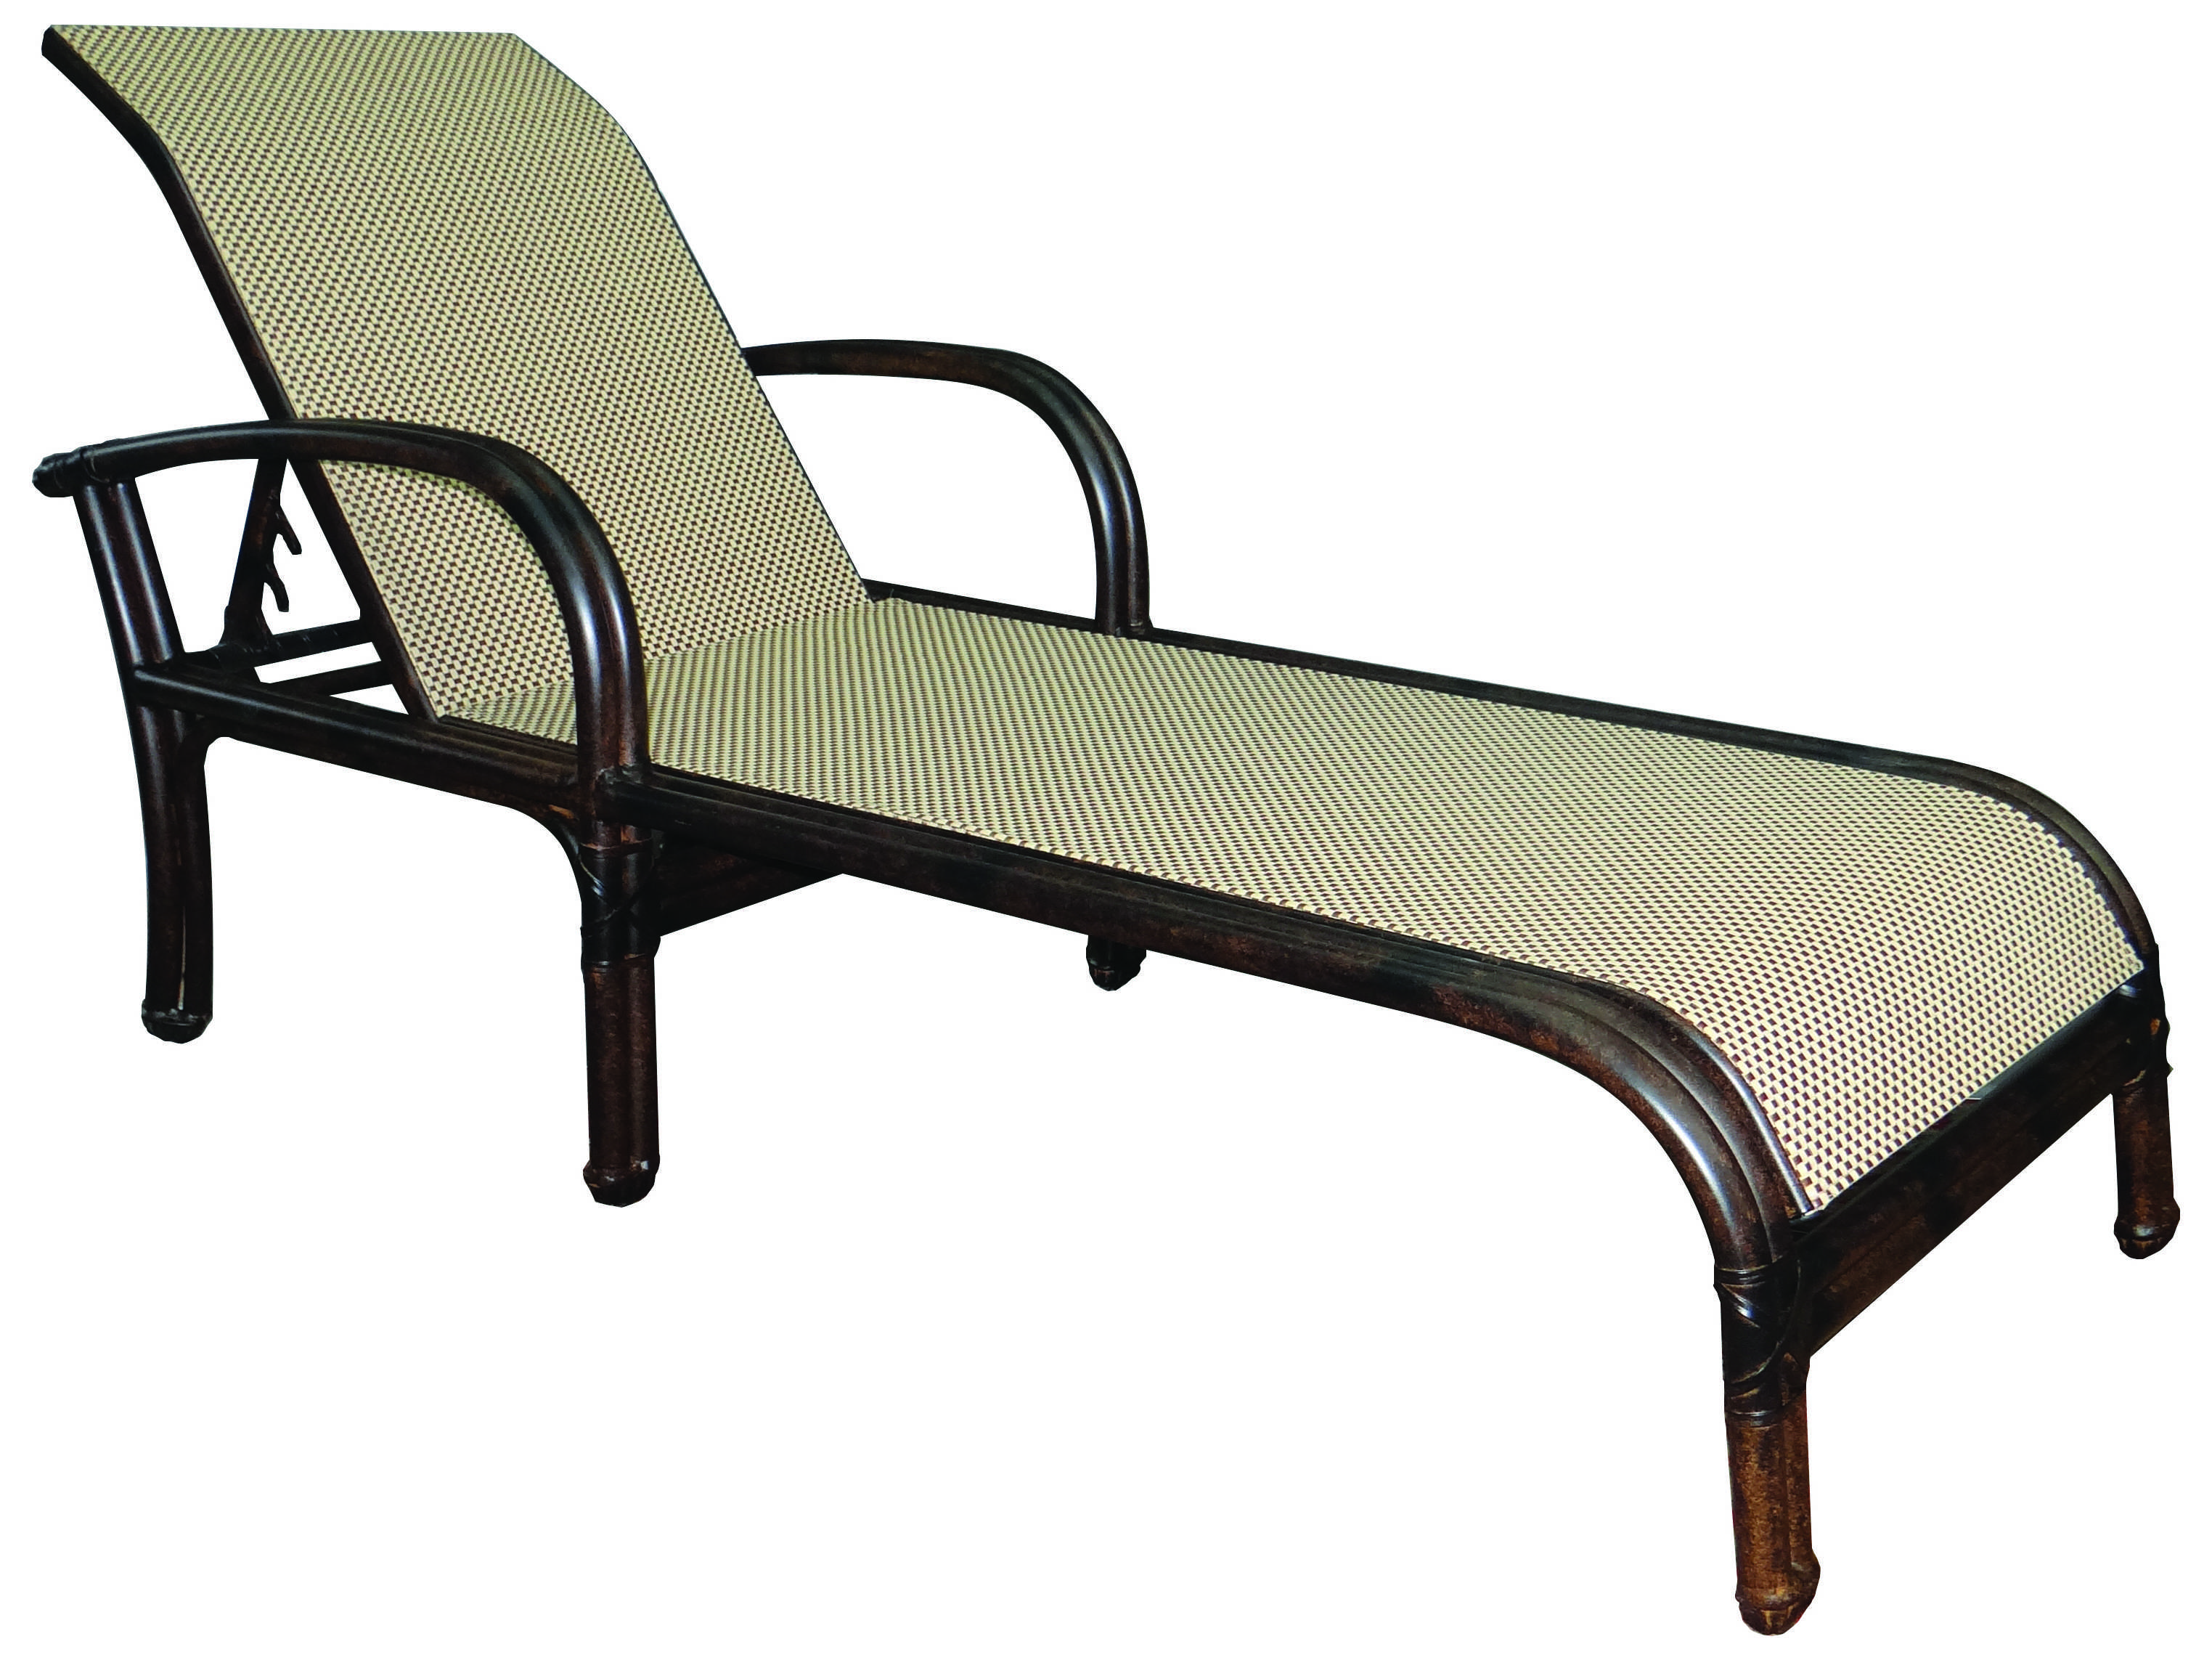 Castelle meridian sling aluminum adjustable chaise lounge for Aluminum chaise lounge with wheels